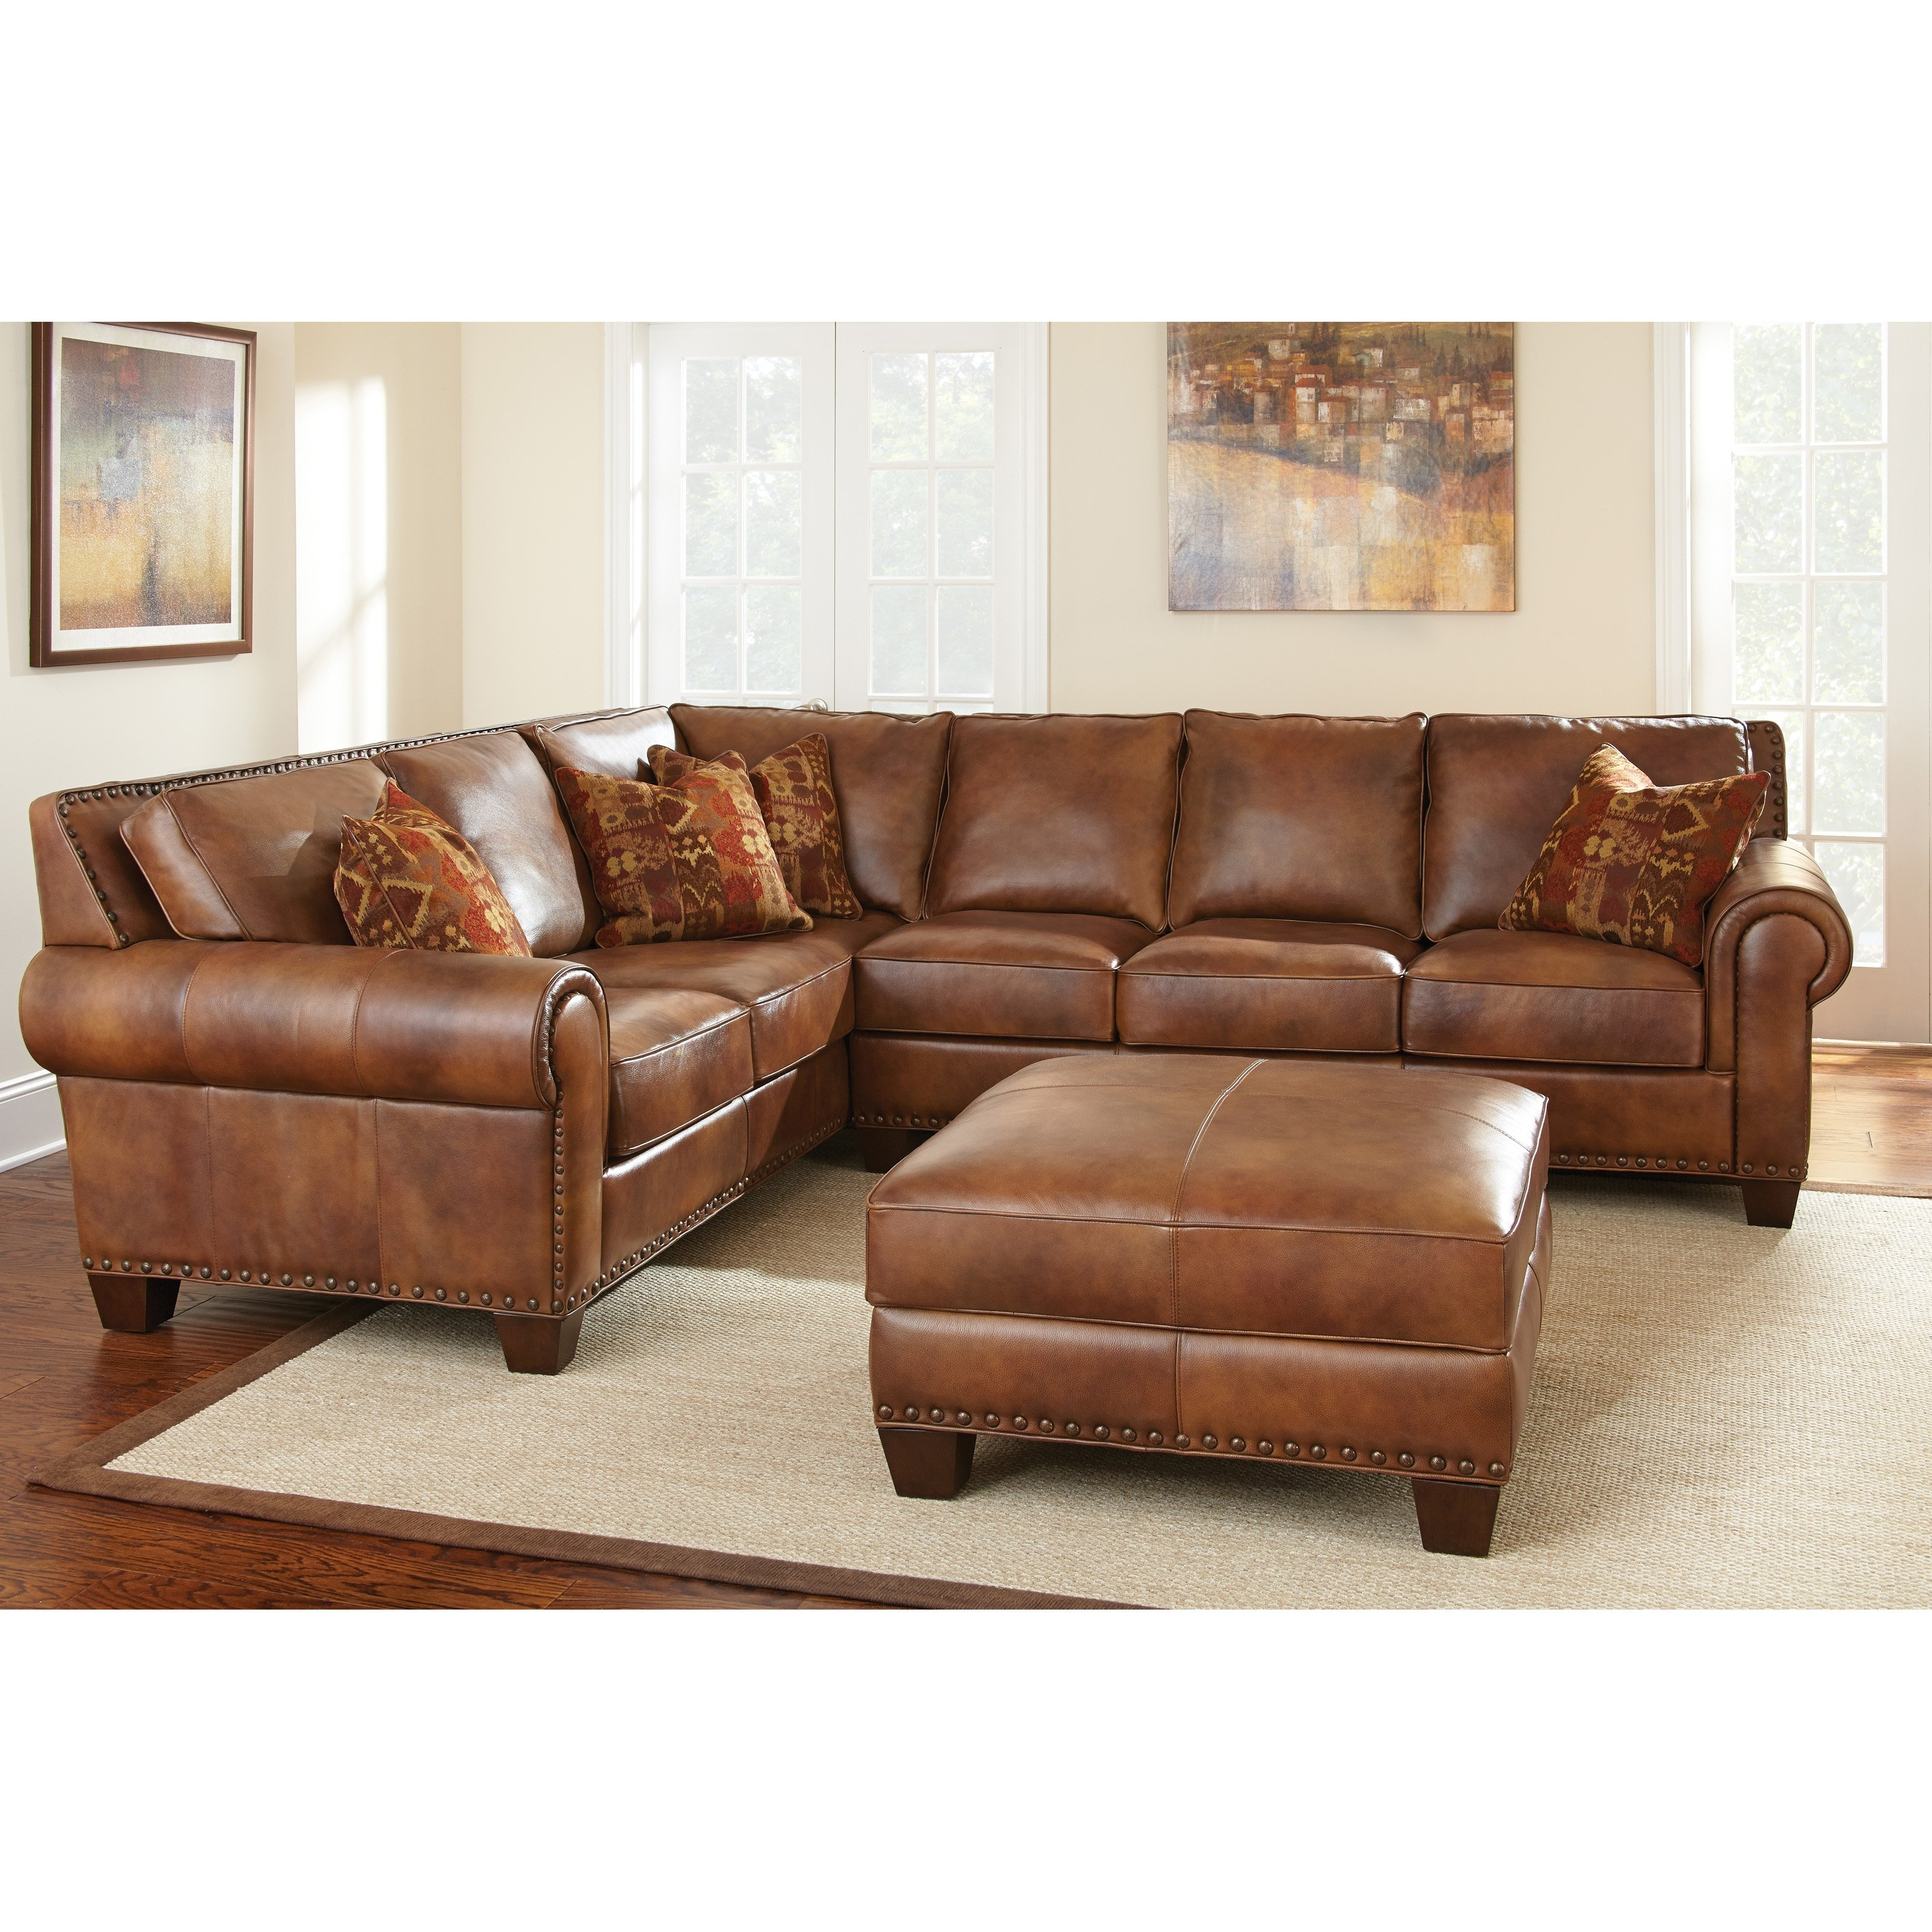 Ivan Smith Sectional Sofas With Well Known Have To Have It. Steve Silver Silverado Sectional Sofa With (Gallery 8 of 20)